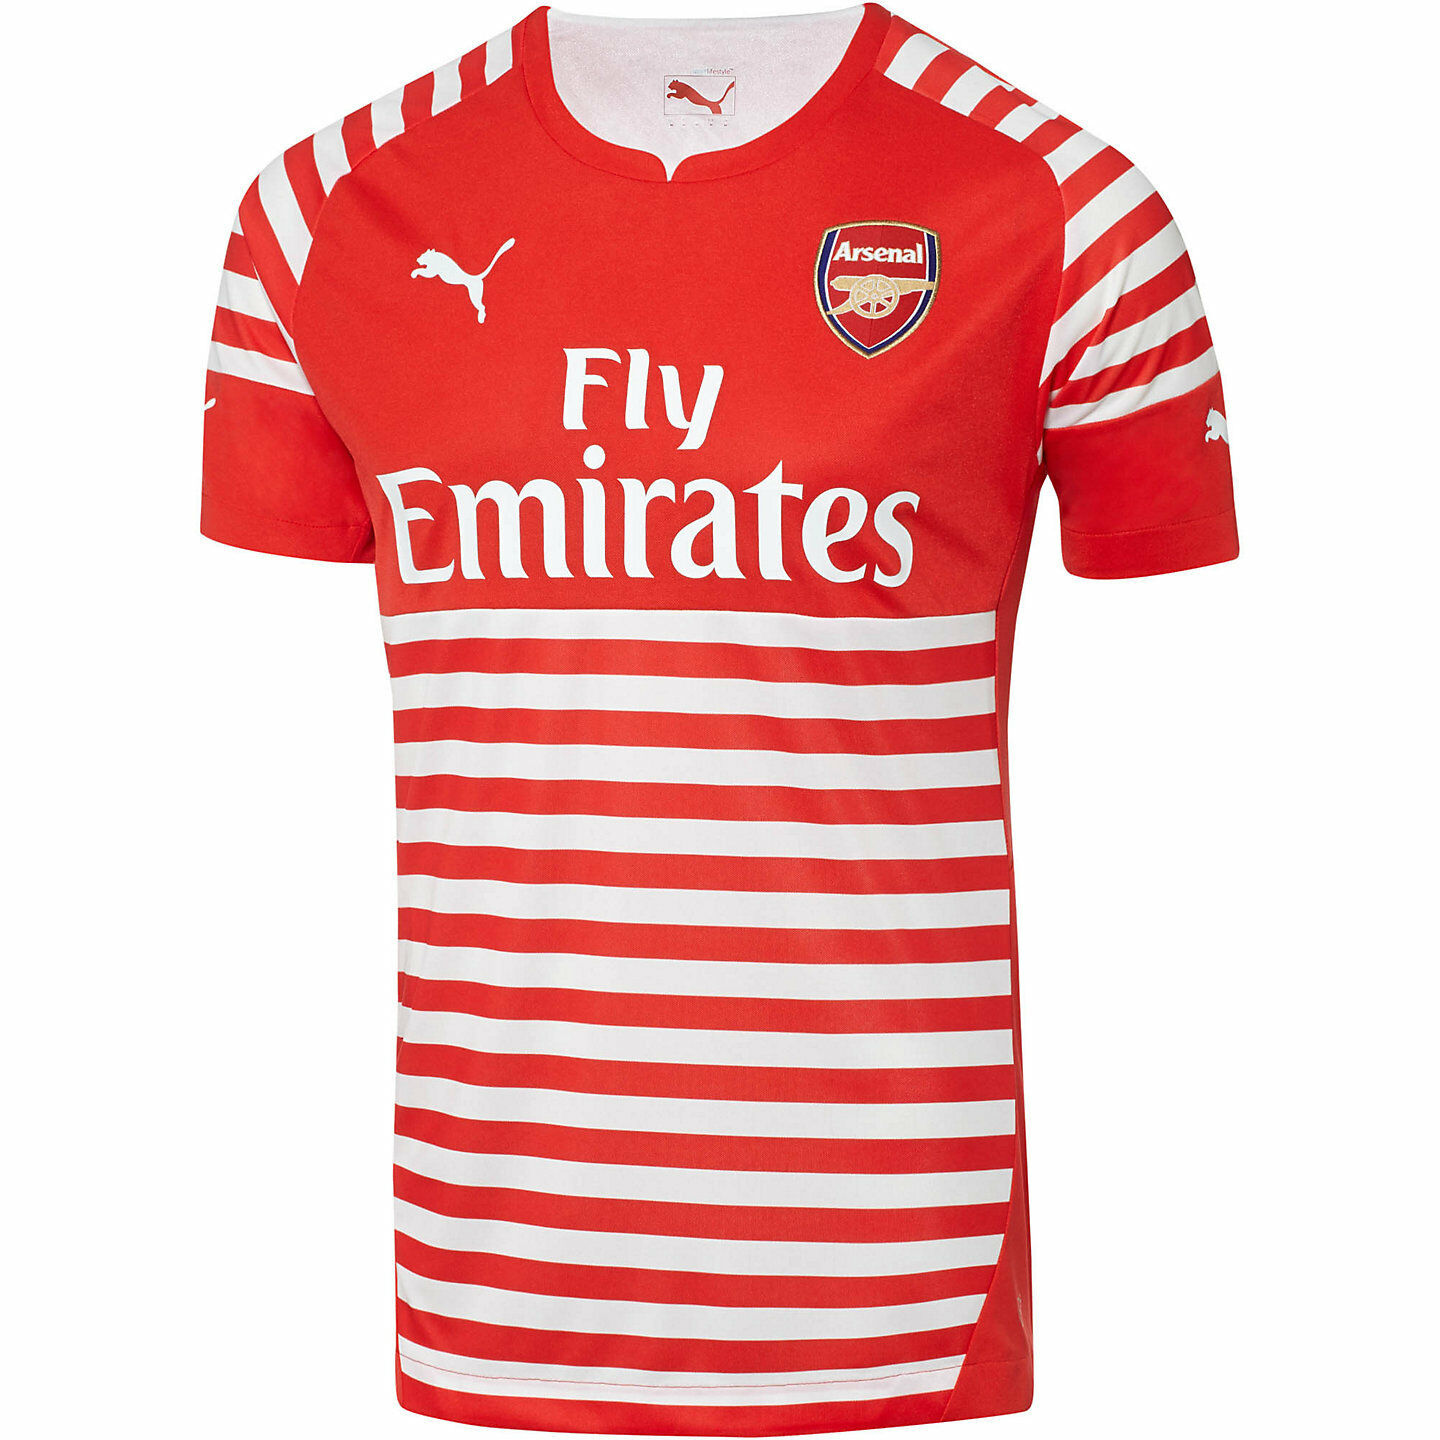 Puma Arsenal FC Official 2014-15 Soccer Training Jersey  New ROT / Weiß